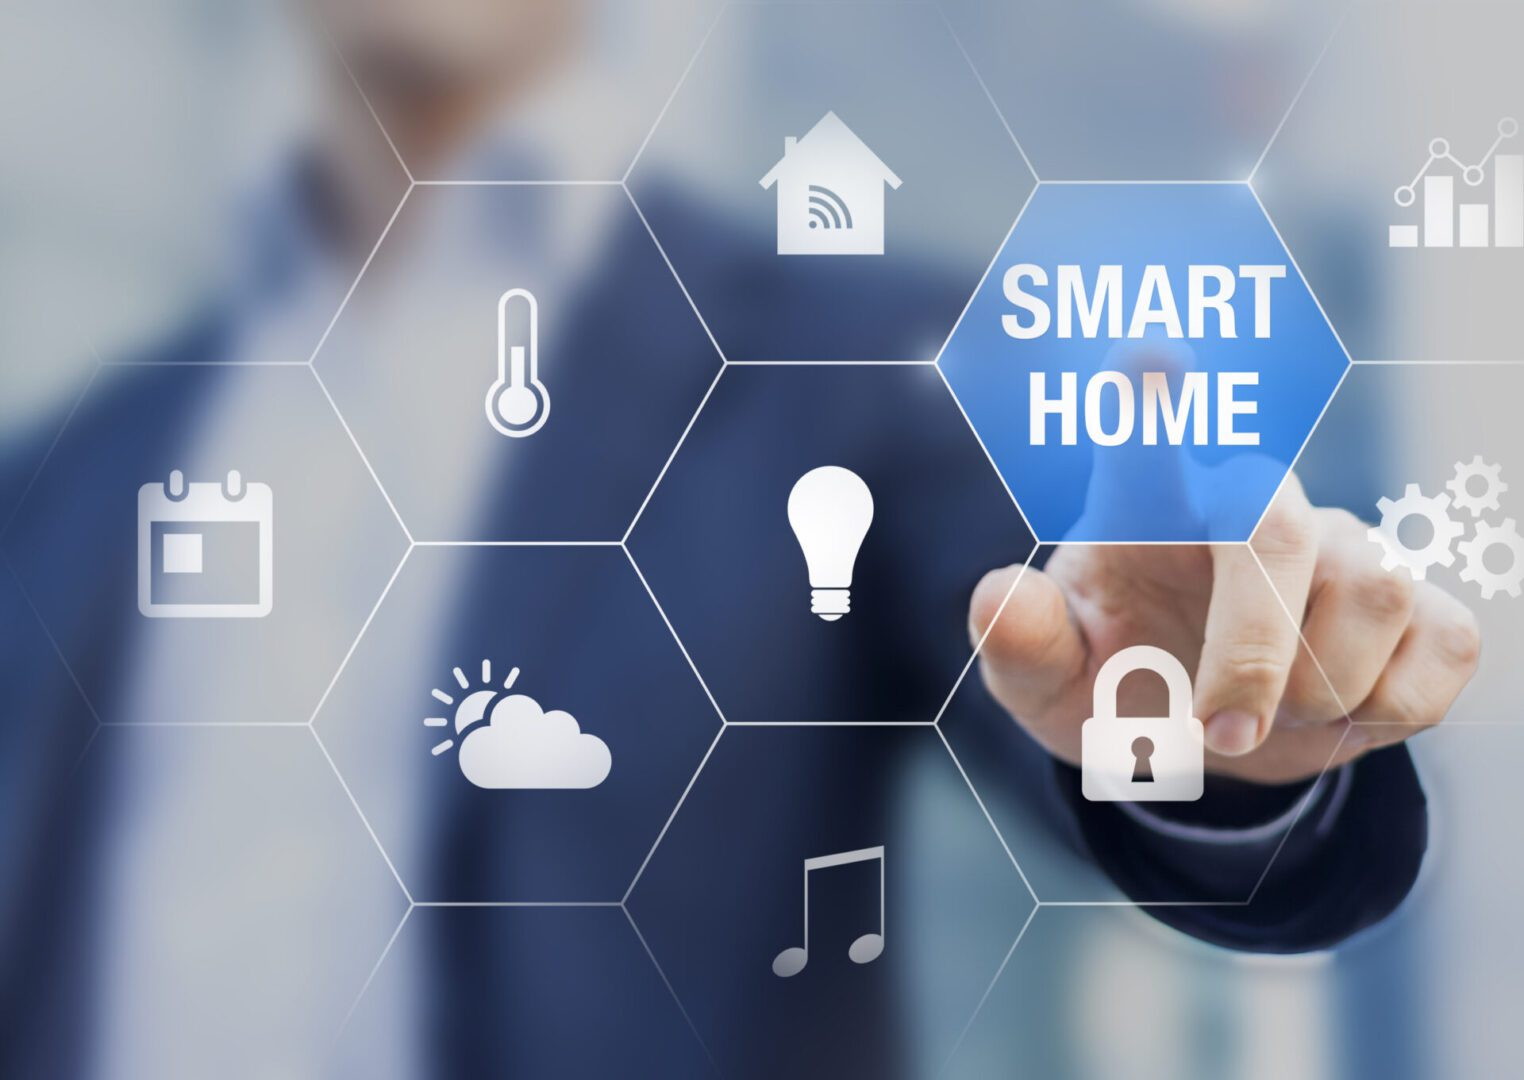 Smart home automation concept with icons showing the functionalities of this new technology and a person touching a button